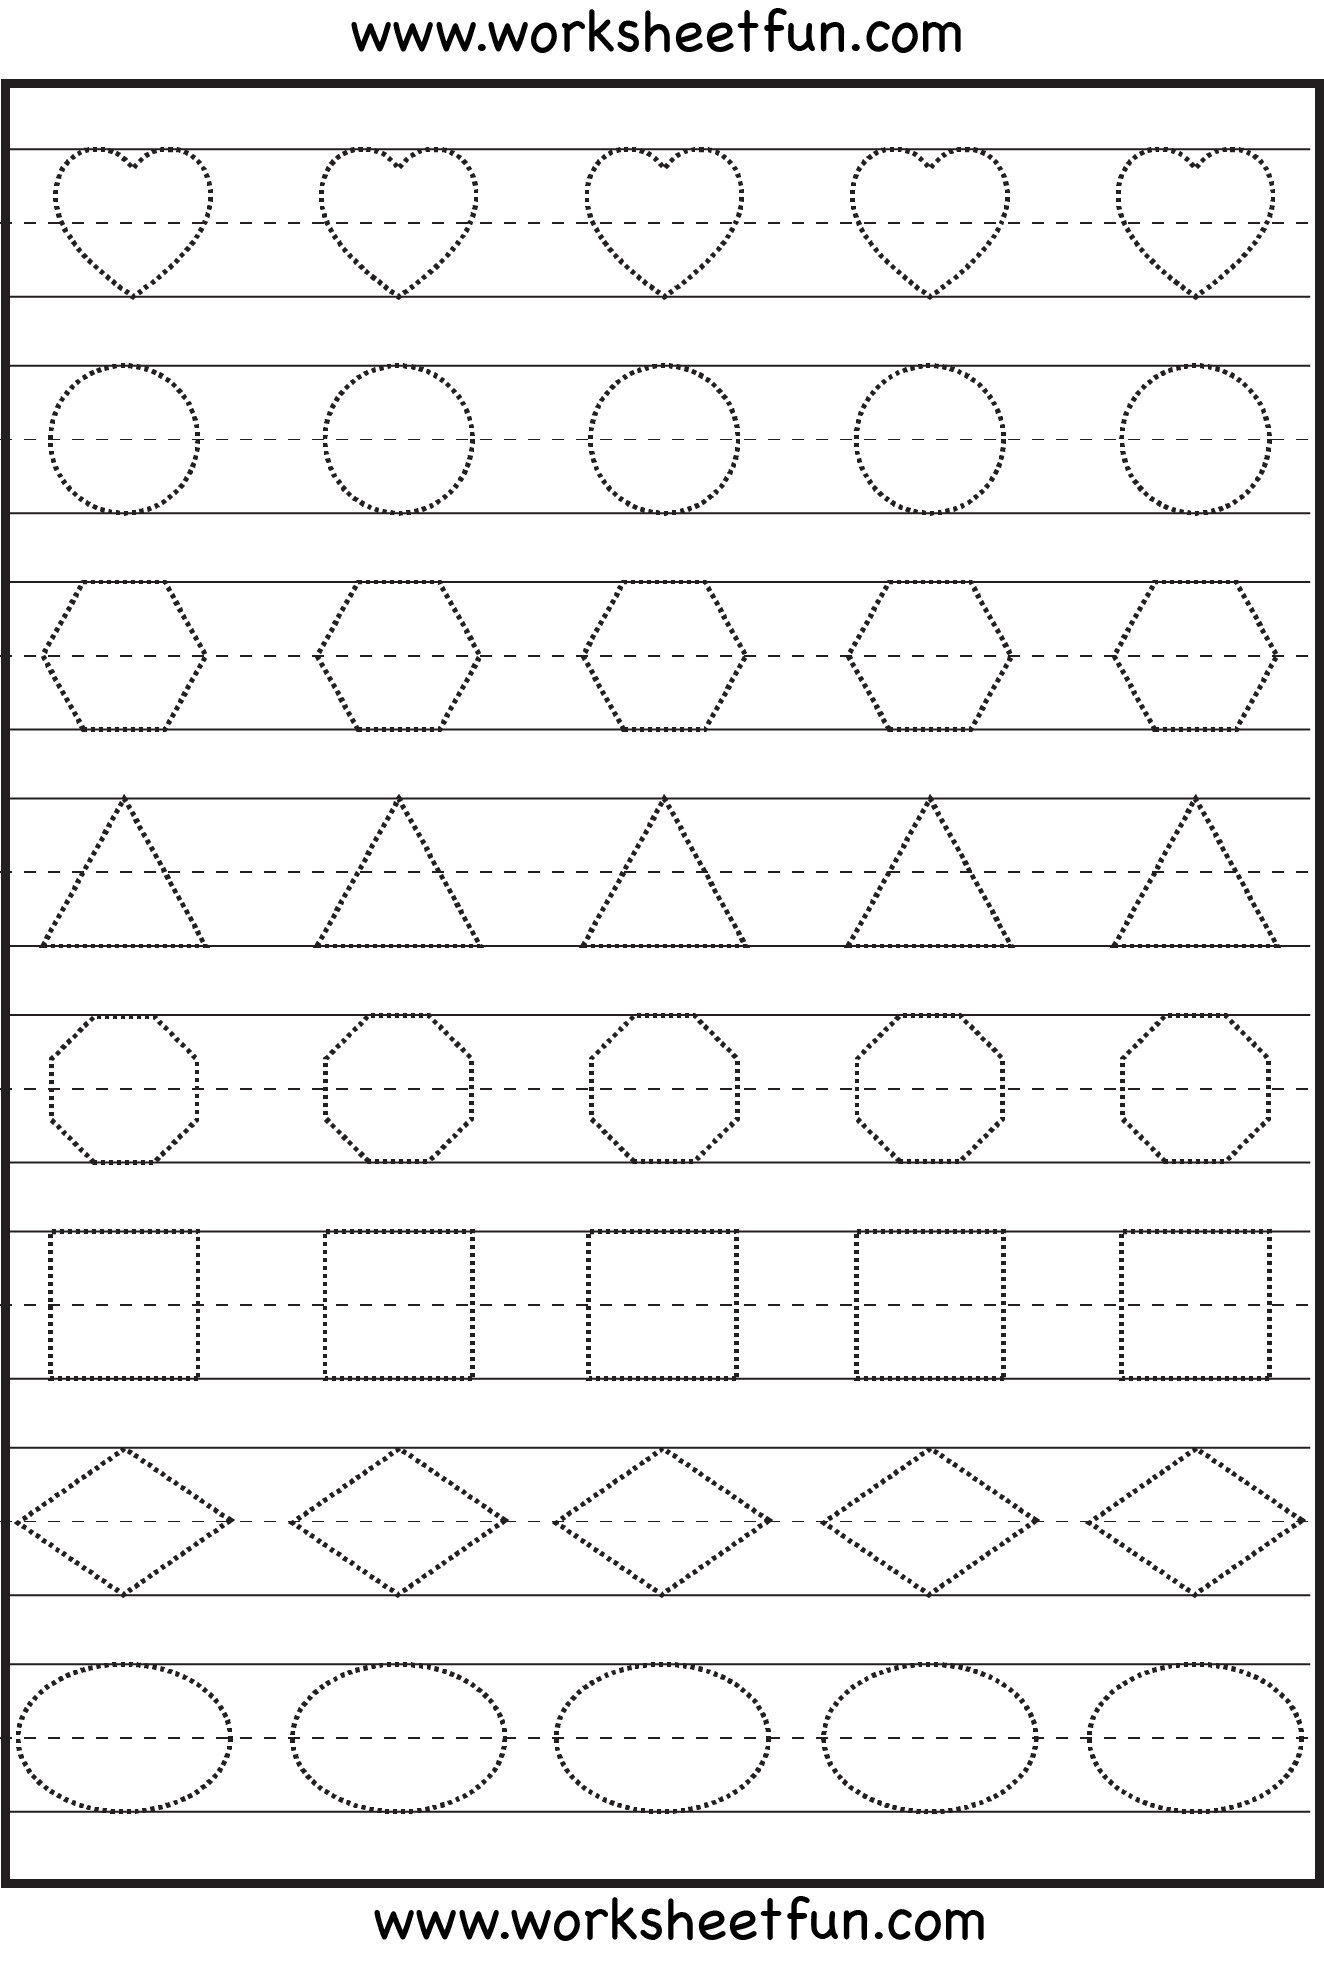 worksheet Free Printable Shapes Worksheets For Preschoolers shape tracing math pinterest shapes activities and worksheets letters more lots of preschool practice sheets